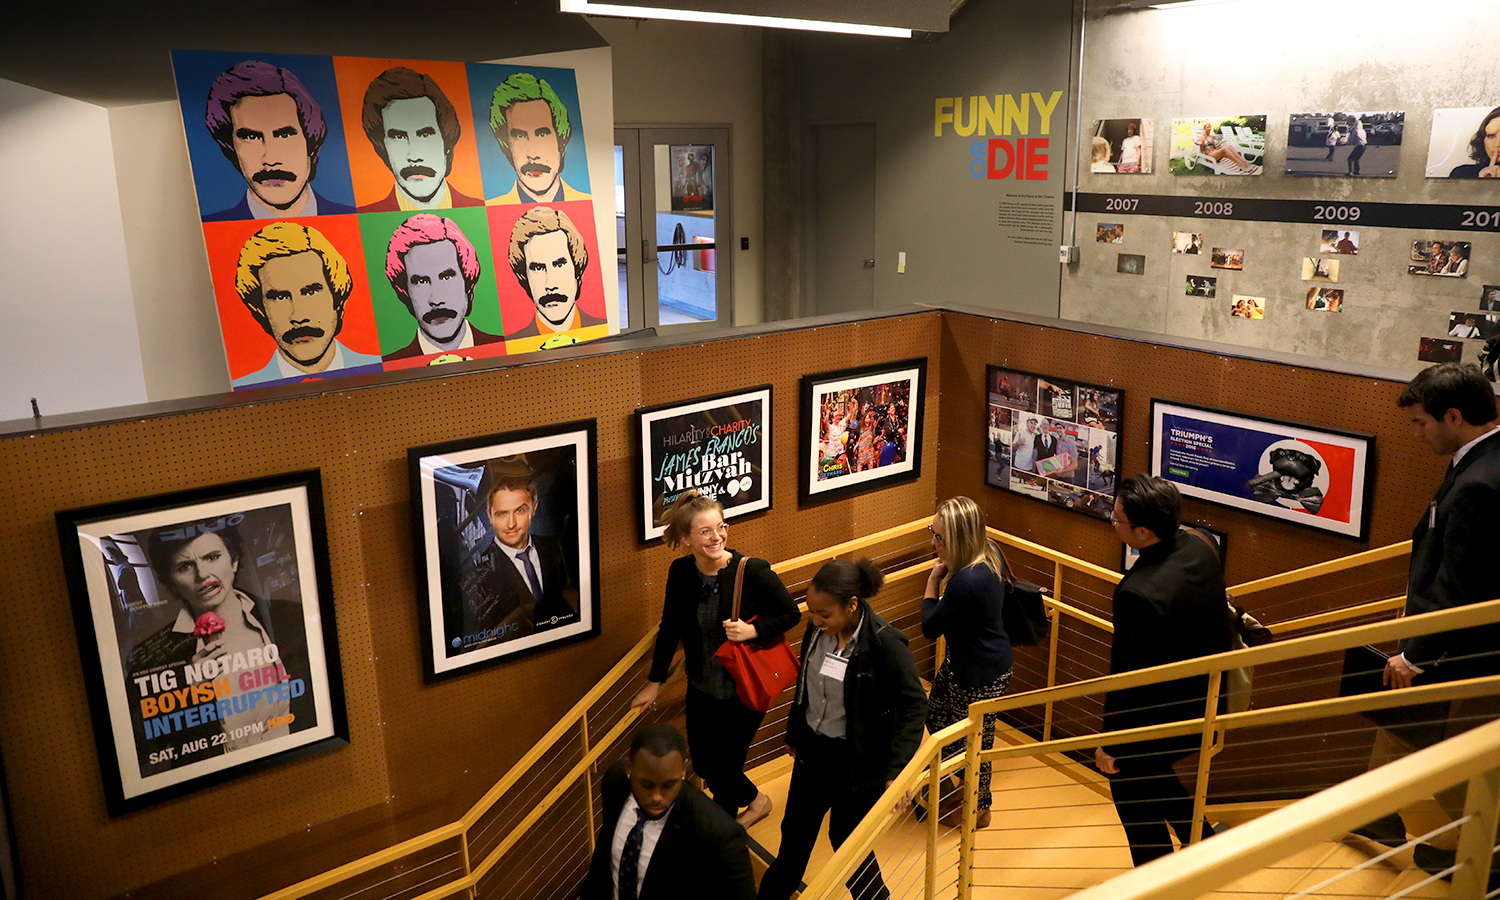 Funny or Die reception area, West Hollywood